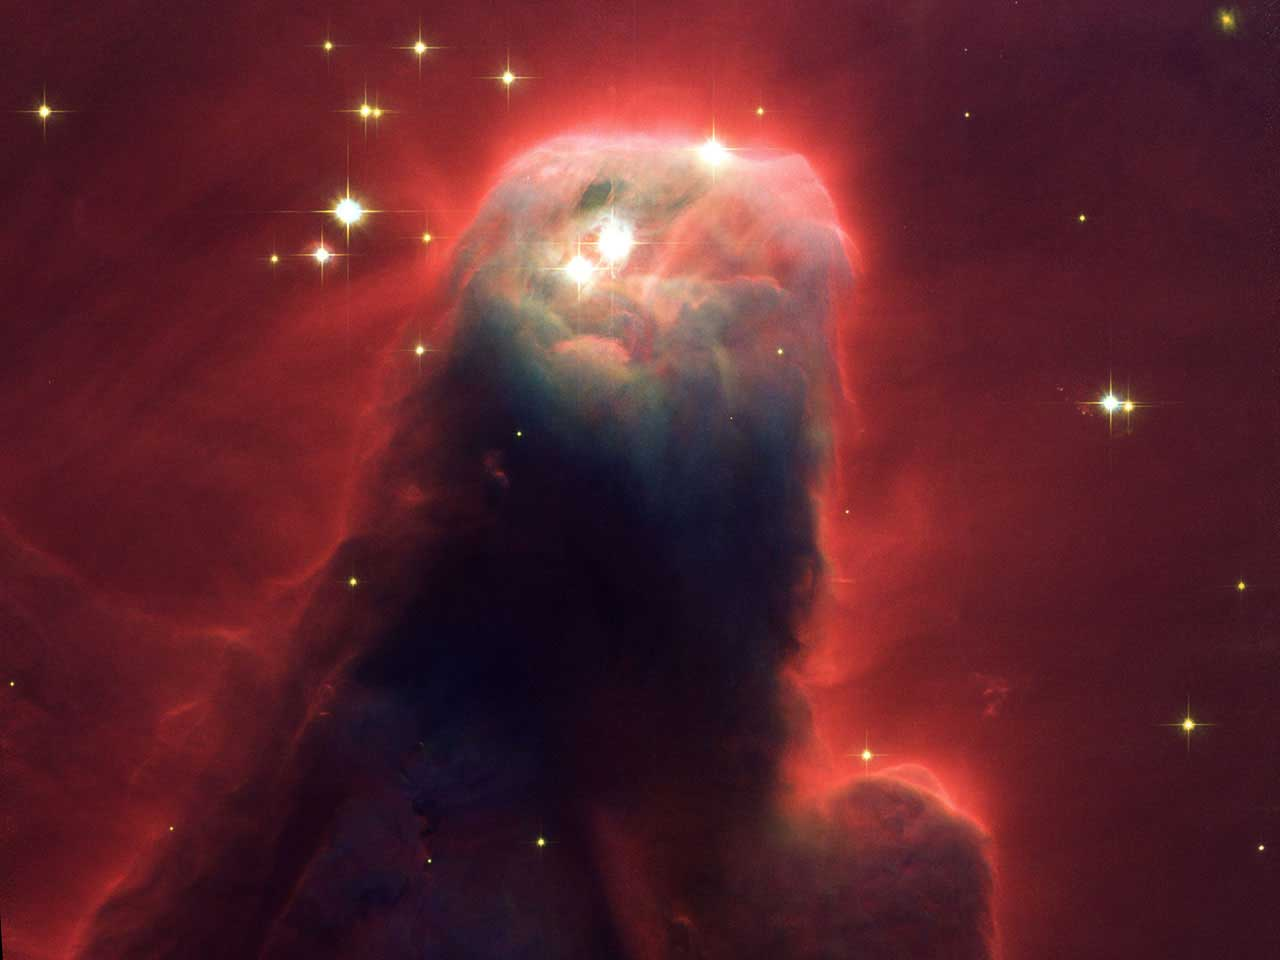 <strong>Cone Nebula</strong>:                                   This monstrous pillar resides in a turbulent star-forming region. This picture shows the upper 2.5 light-years of the nebula, a height that equals 23 million roundtrips to the Moon. The entire nebula is 7 light-years long. The Cone Nebula resides 2,500 light-years away in the constellation Monoceros.                                   <i>Imaged released on April 30, 2002.</i>